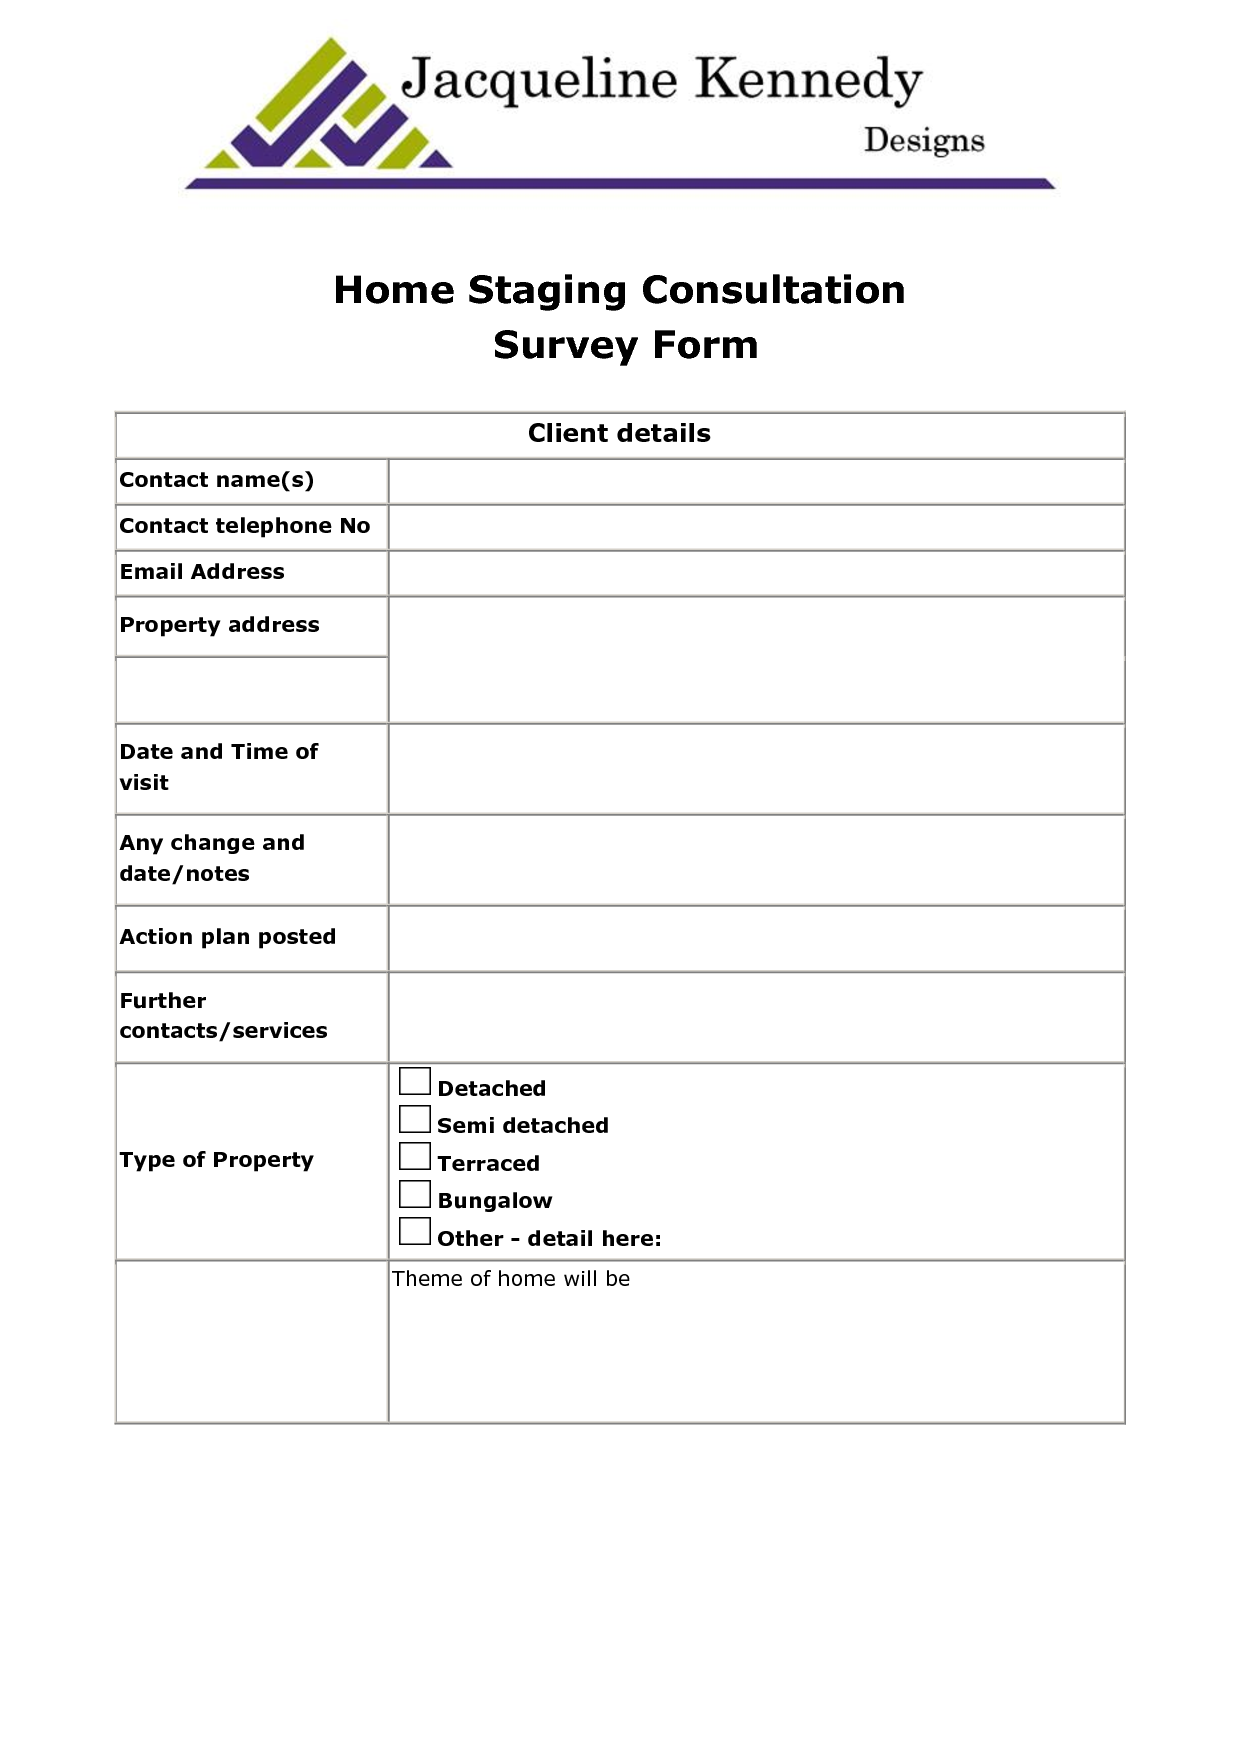 Home Staging Contract Template - Bing Images